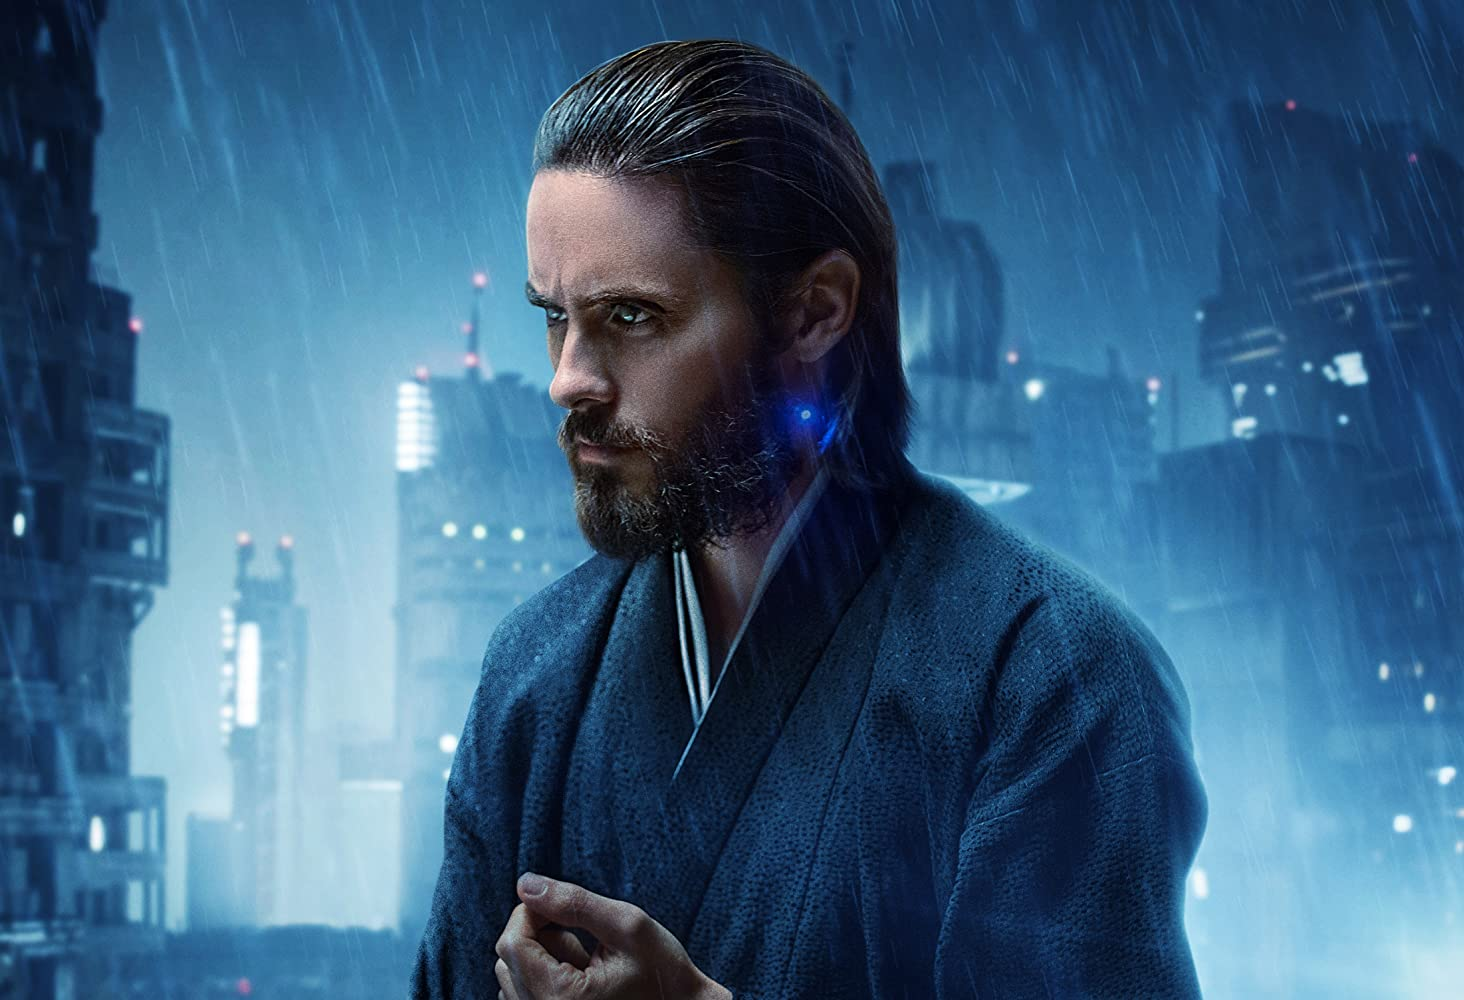 Jared Leto in Blade Runner 2049 (2017)